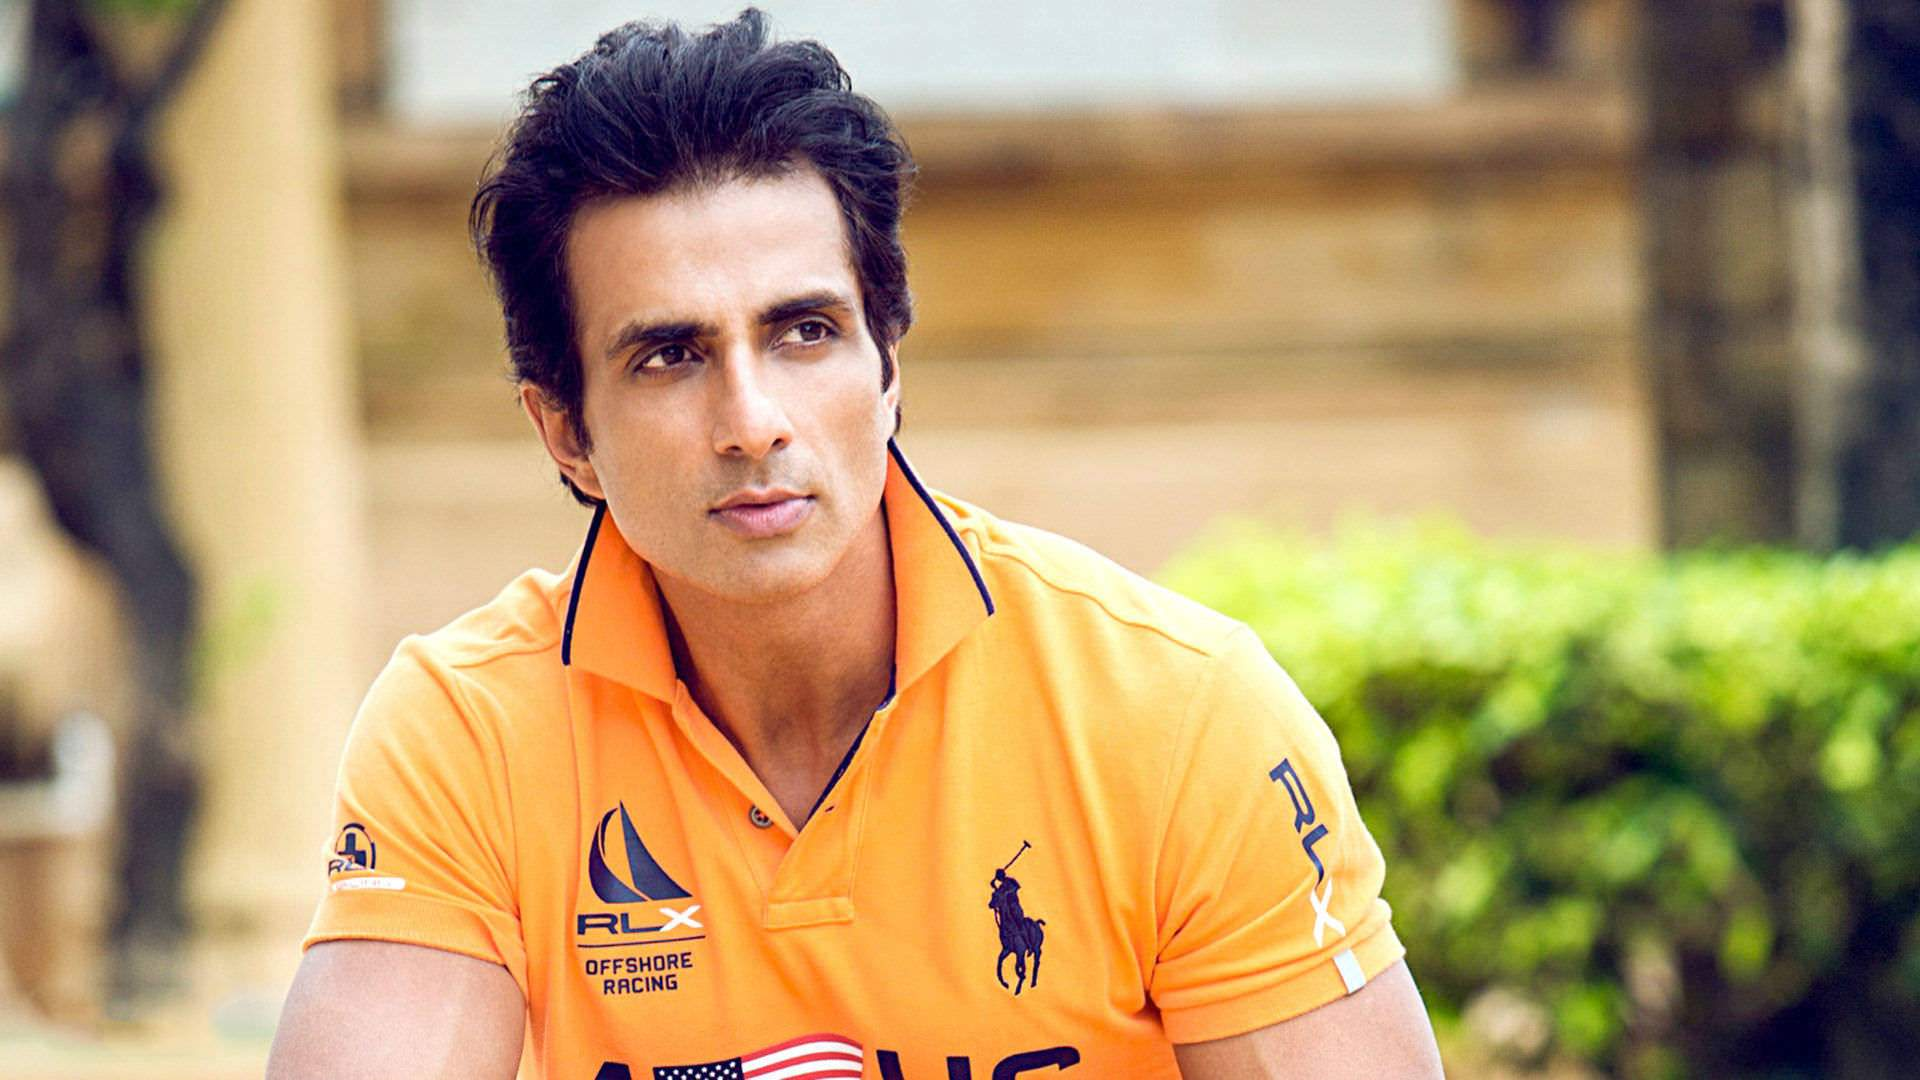 Sonu Sood to play Arjun in Kannada film